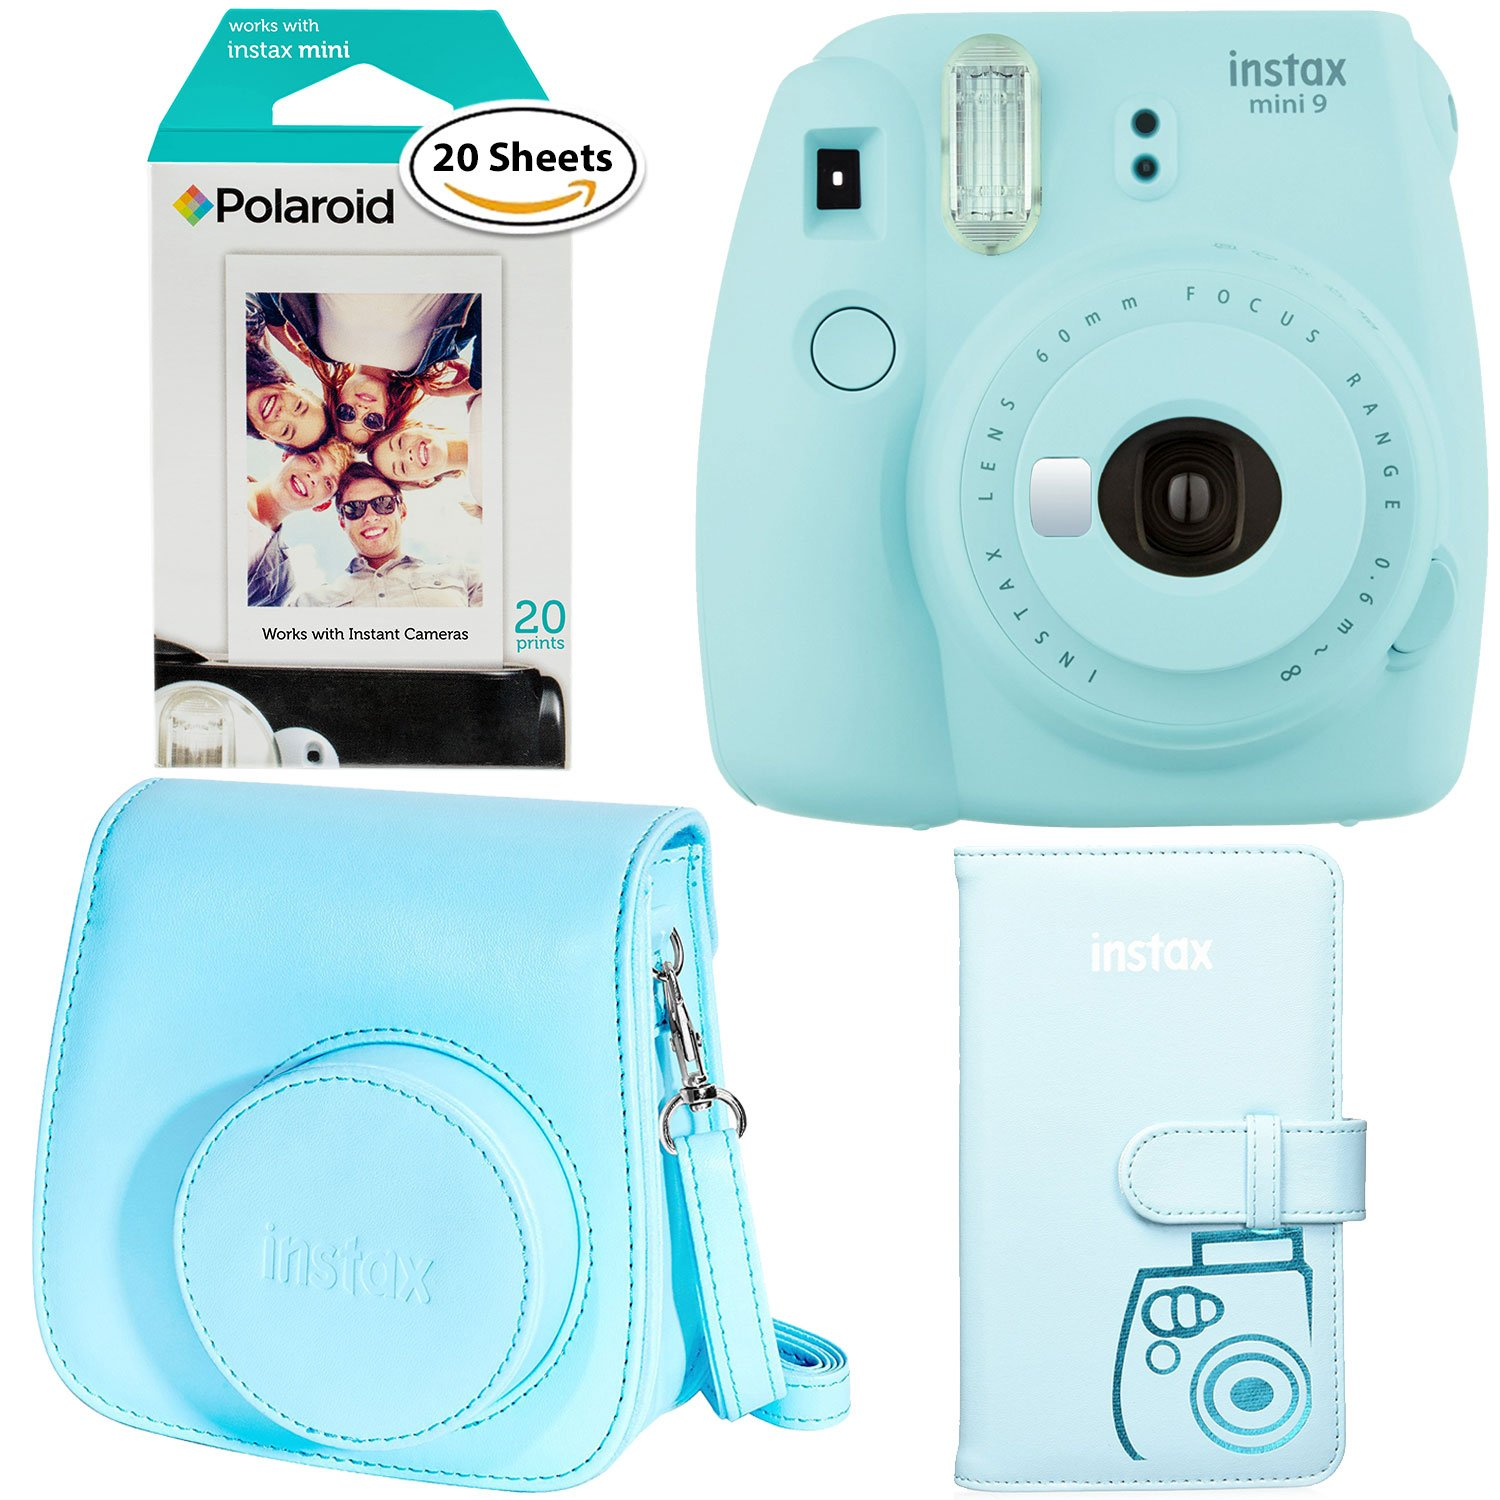 Fujifilm Instax Mini 9 - Ice Blue Instant Camera, Polaroid Instant Film Twin Pack - (20 Sheets), Fujifilm Instax Groovy Camera Case - Blue and Instax Wallet Album - Blue  by Fujifilm